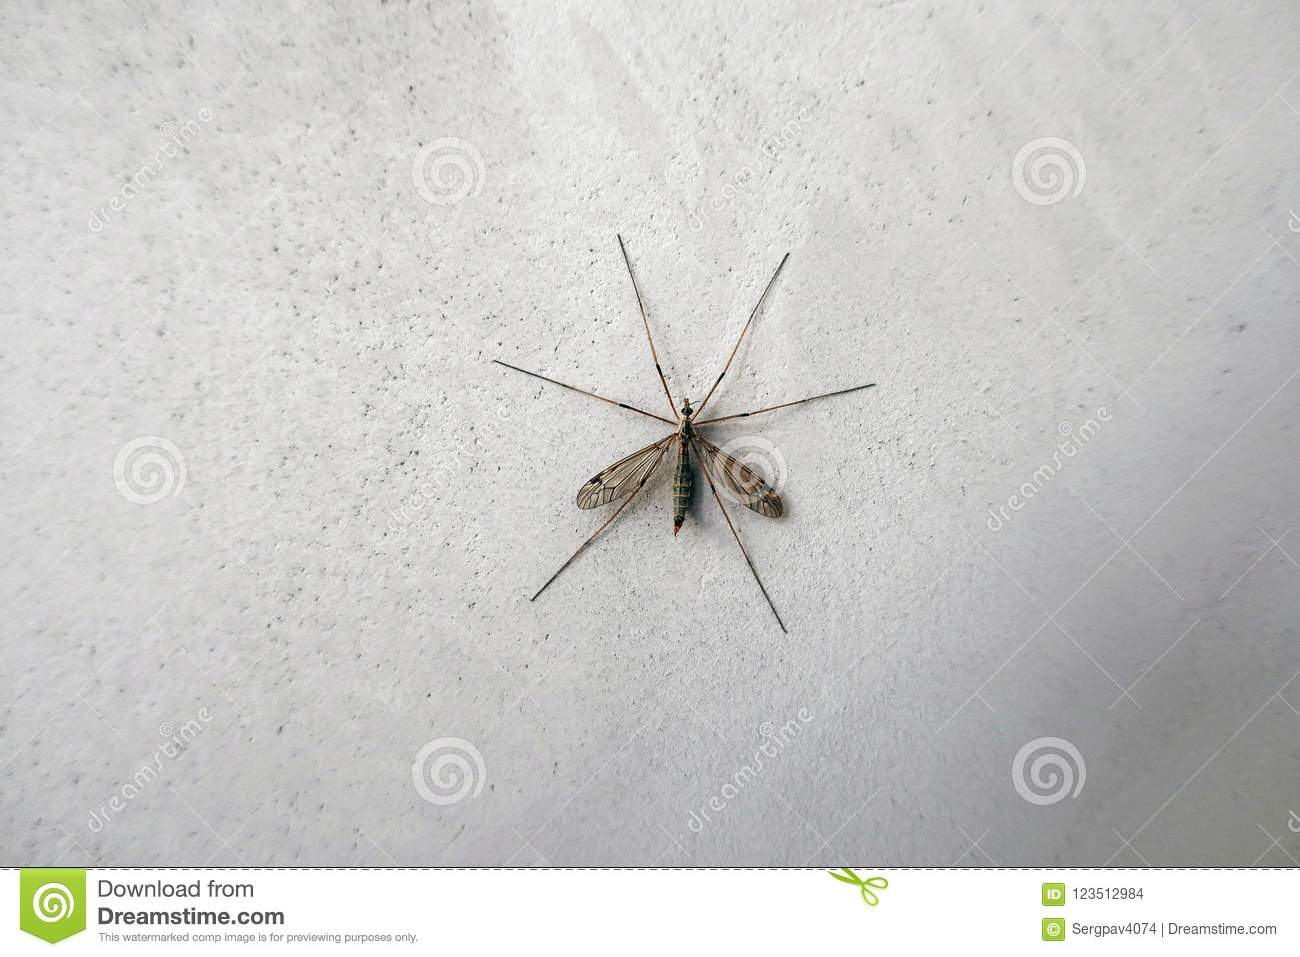 Big mosquito on the wall